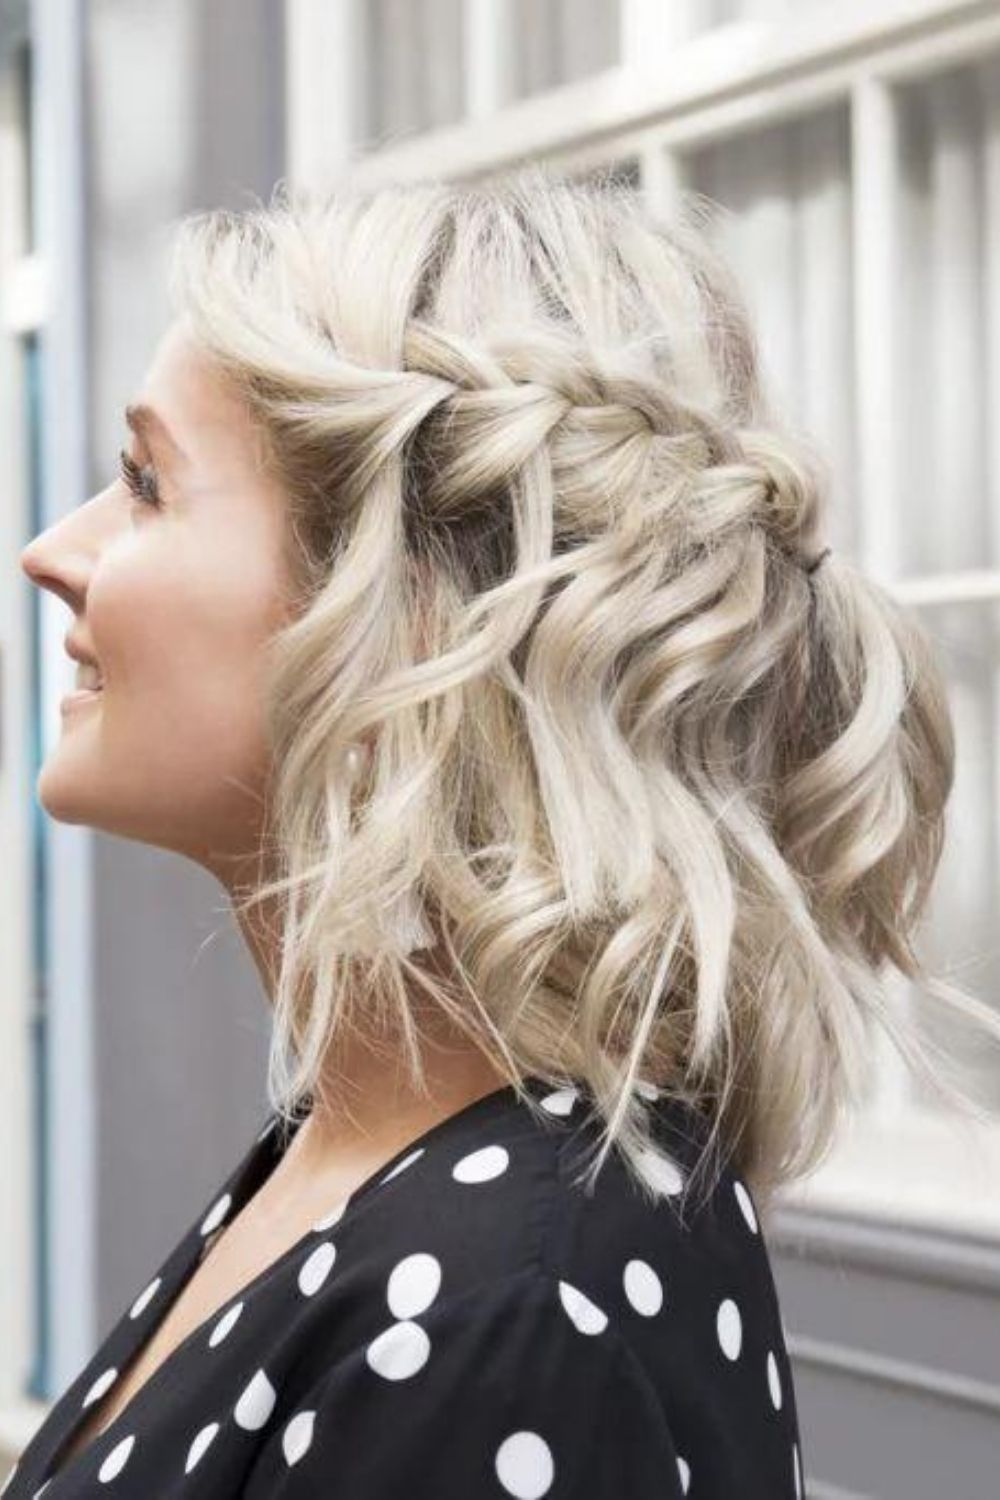 Gorgeous Homecoming Hairstyles For Short Hair 2021